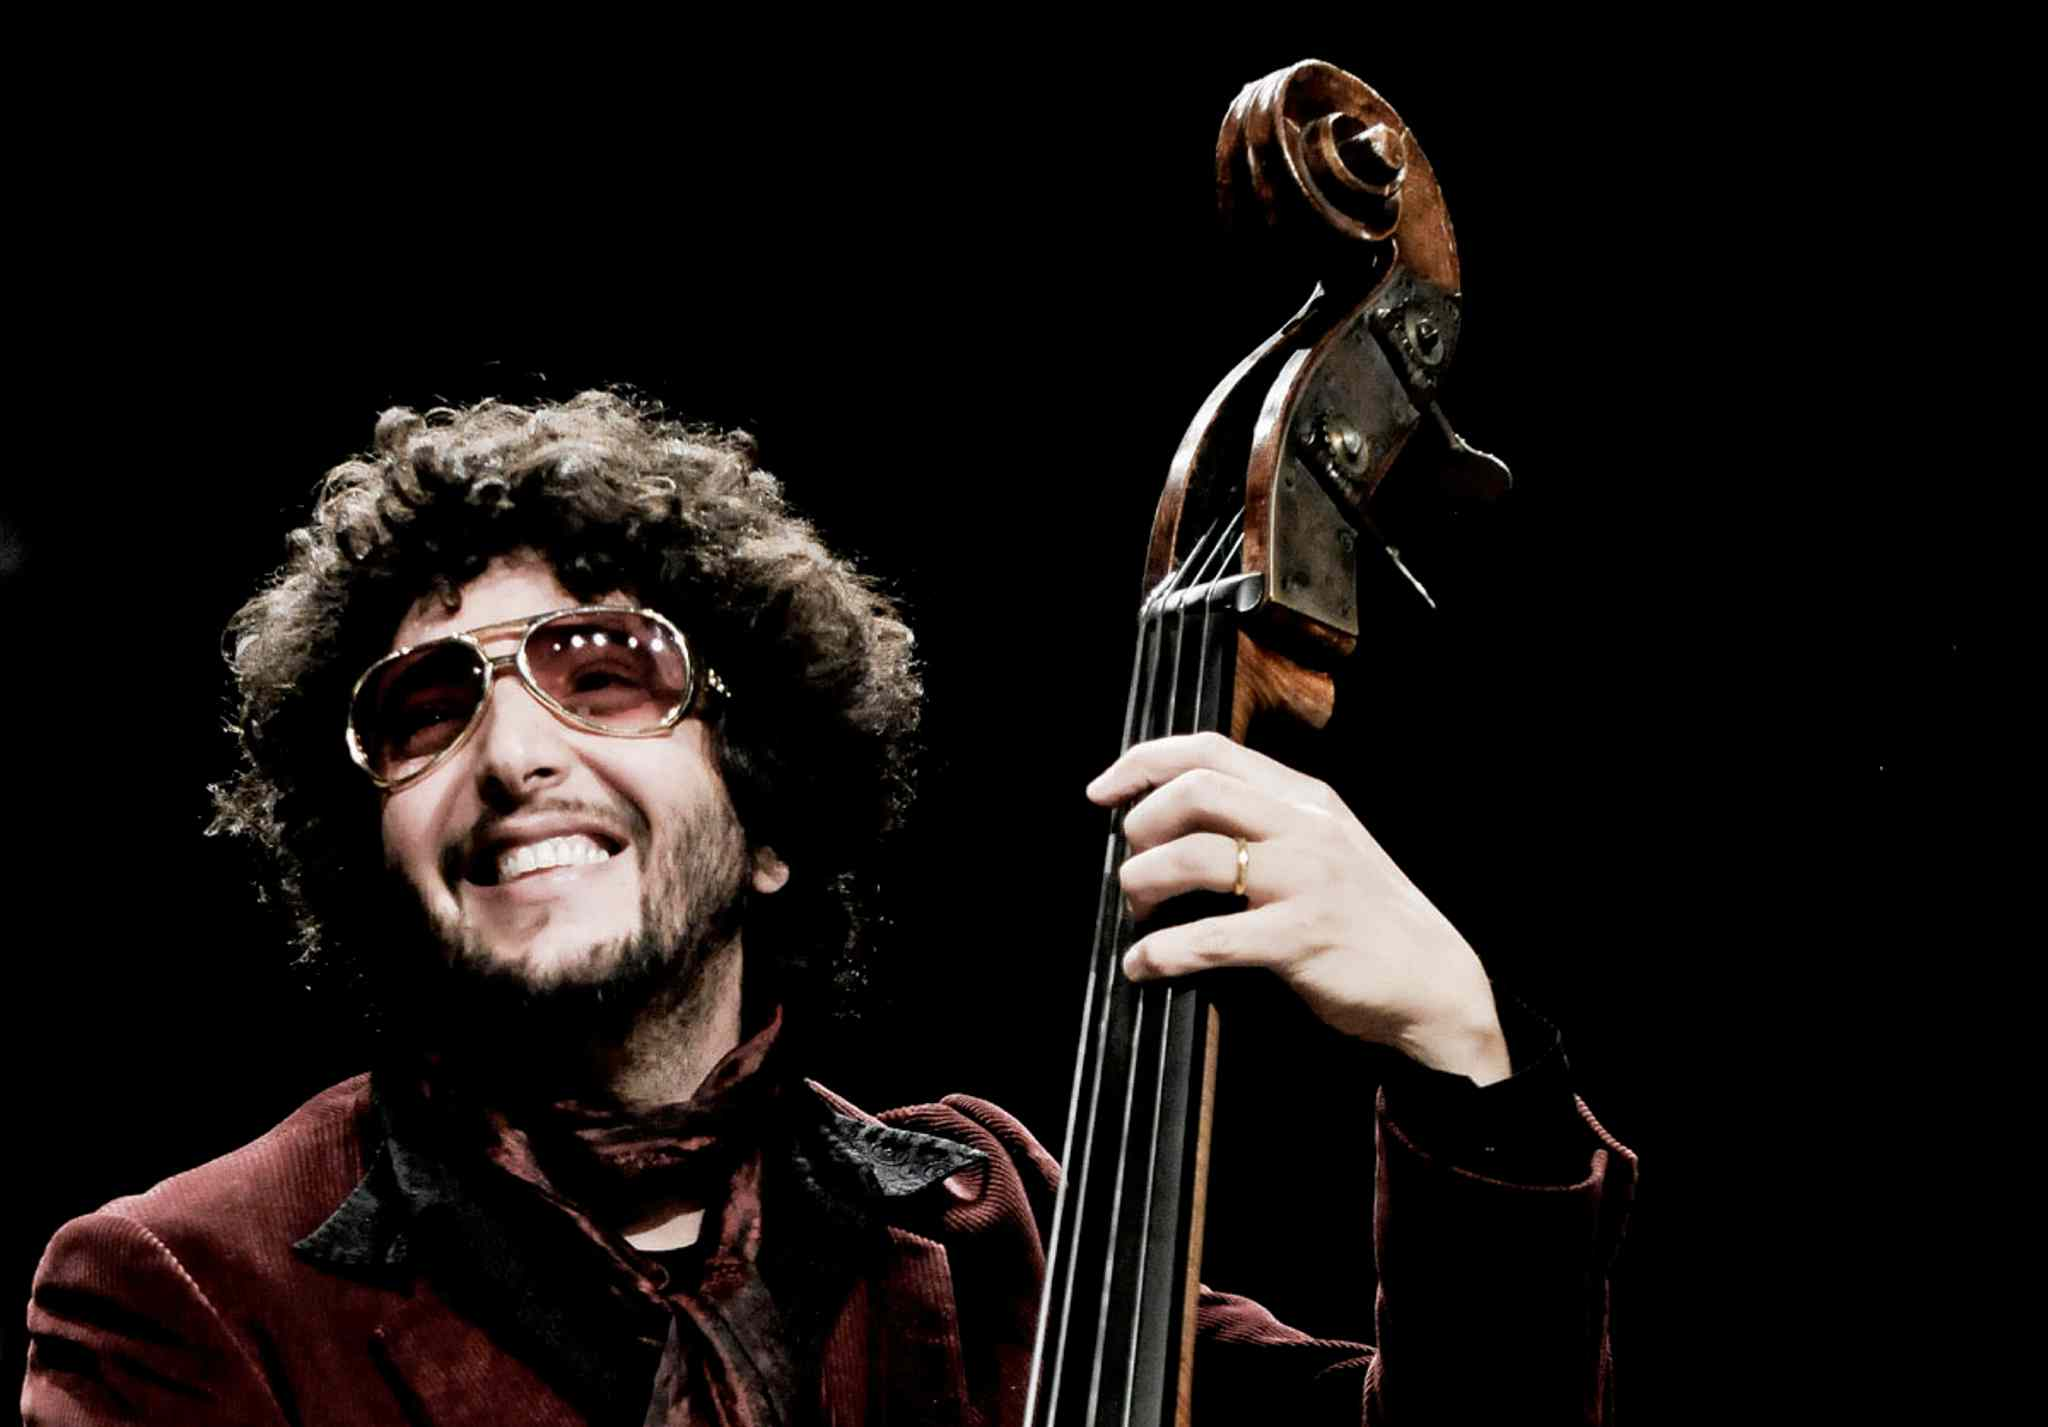 The Omer Avital Quintet will be featured musical performers at Tarbut: Festival of Jewish Culture, which runs Nov. 16-24 at the Rady Jewish Community Campus.